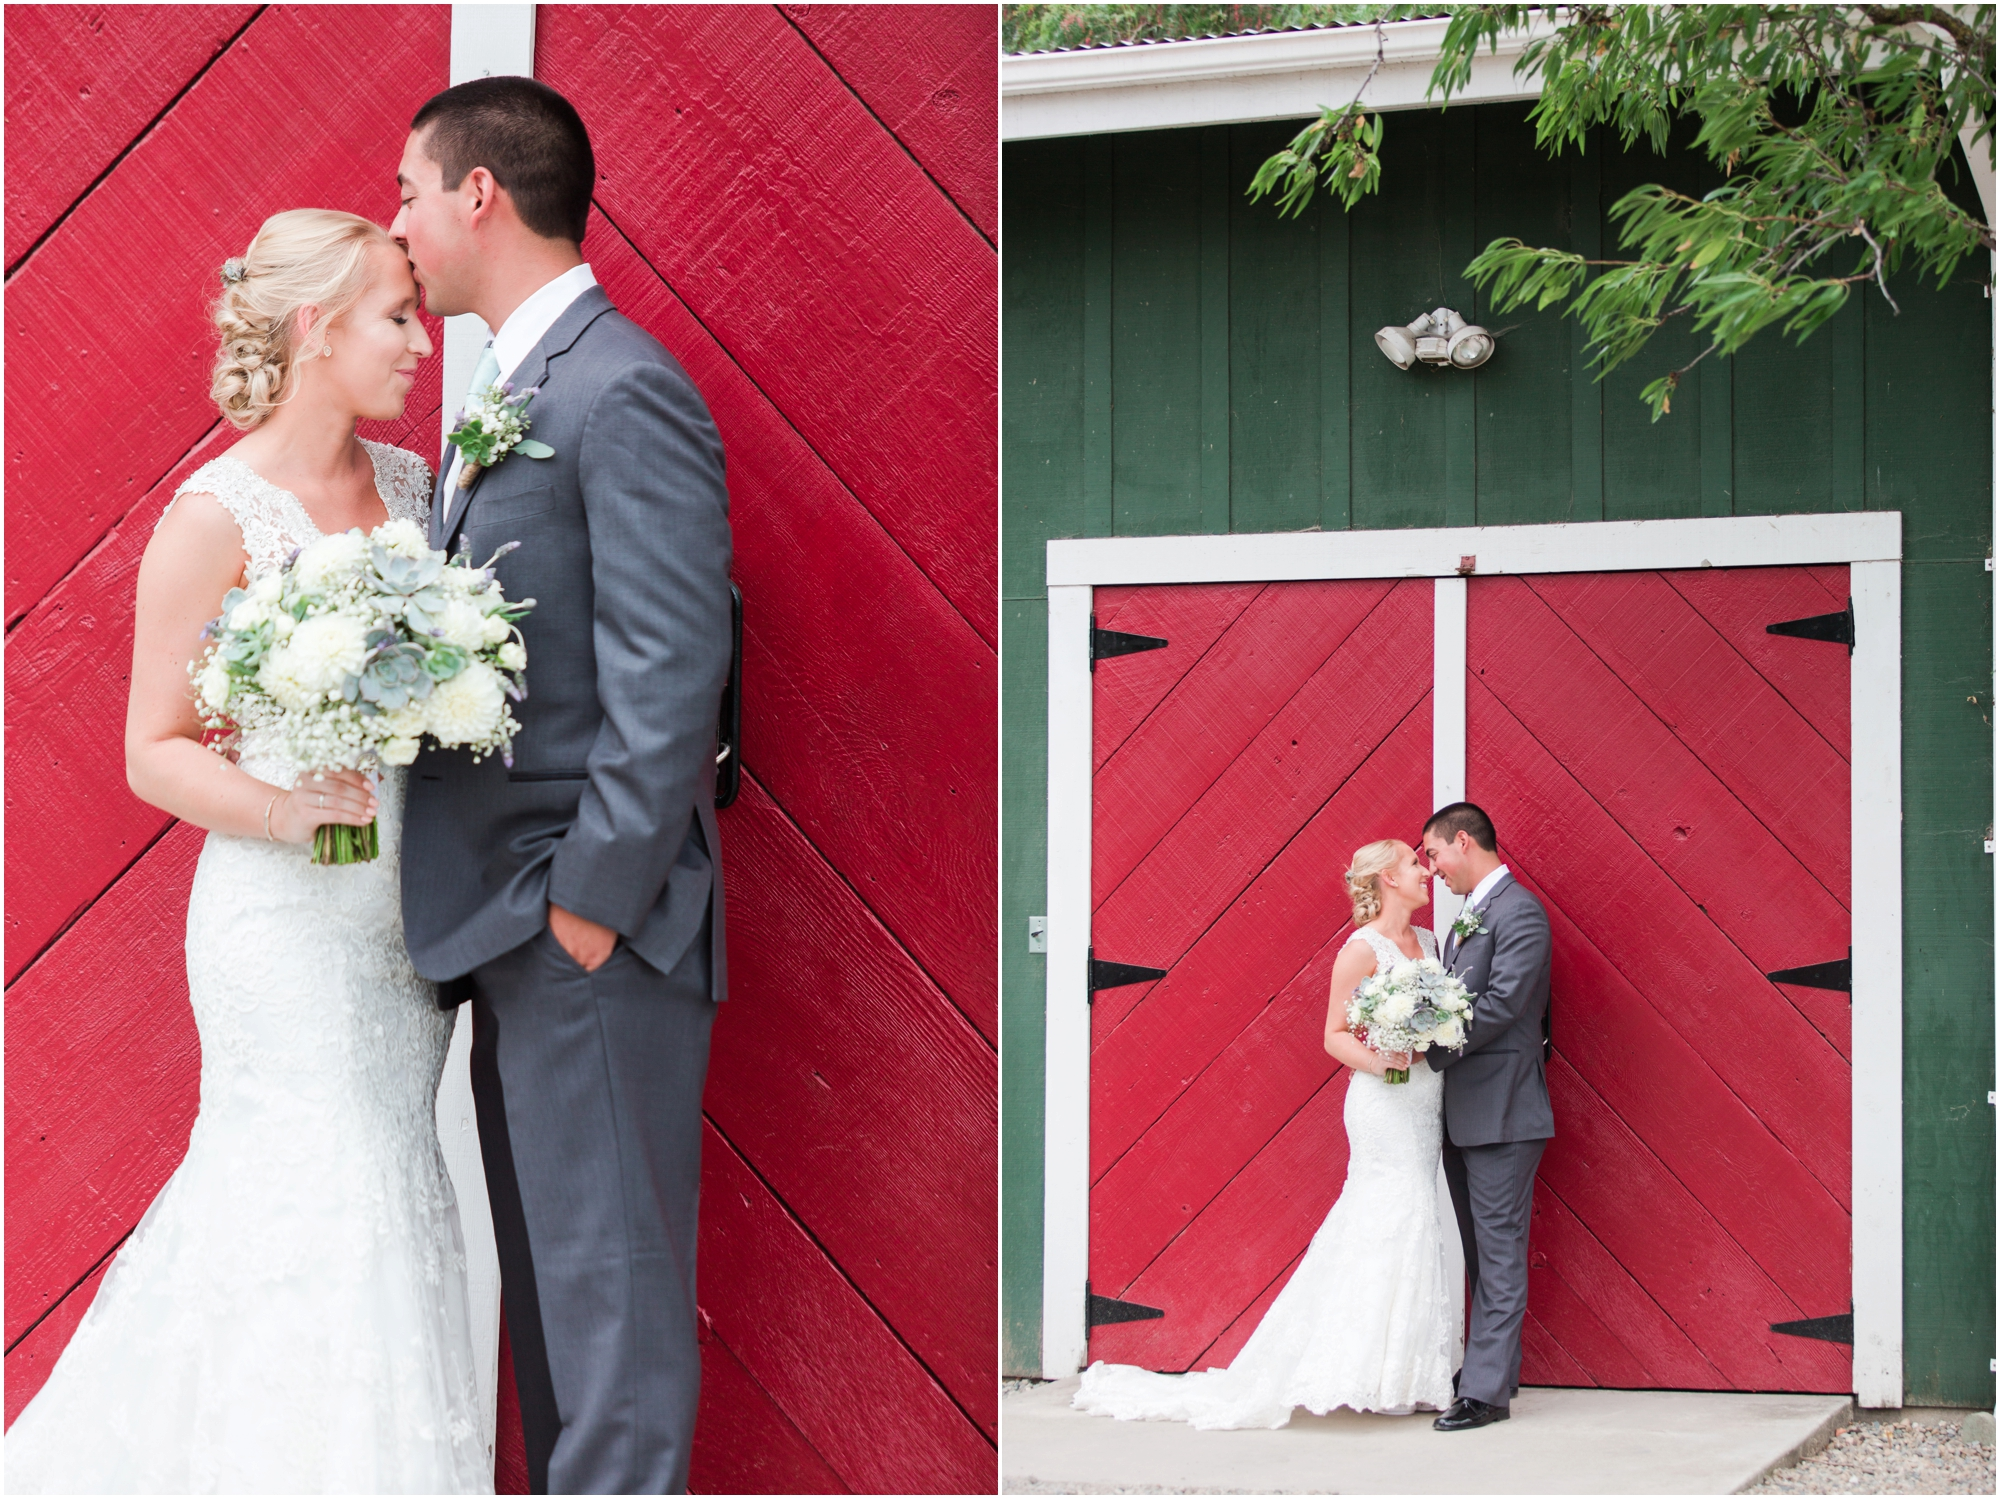 Retzlaff Winery wedding pictures by Briana Calderon Photography_2239.jpg